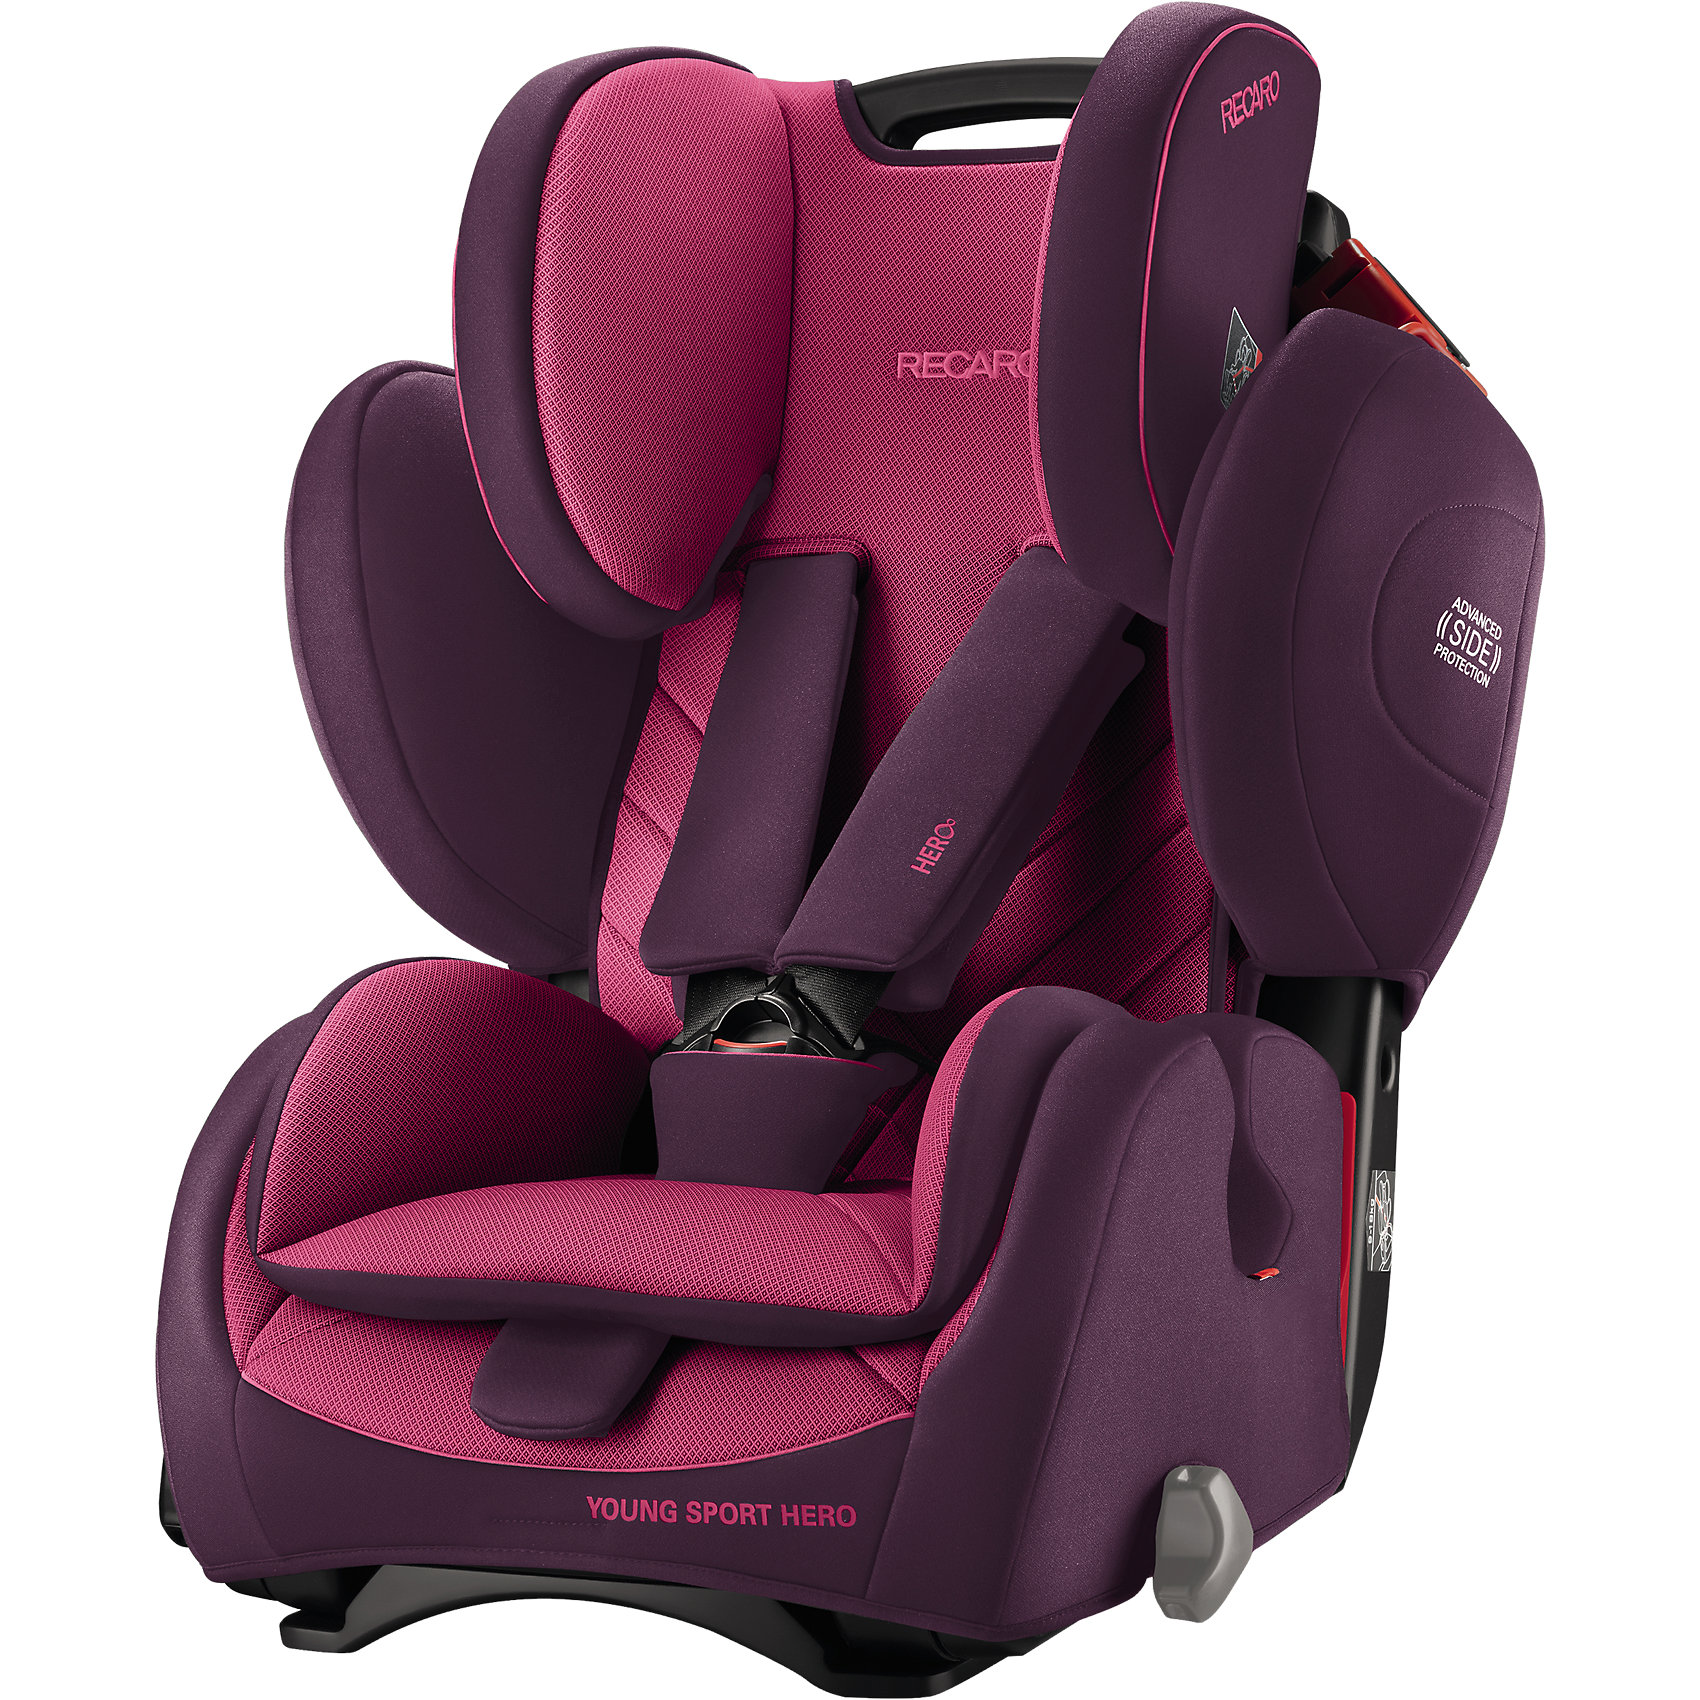 Автокресло Young Sport Hero,  9-36 кг, Recaro, power berry